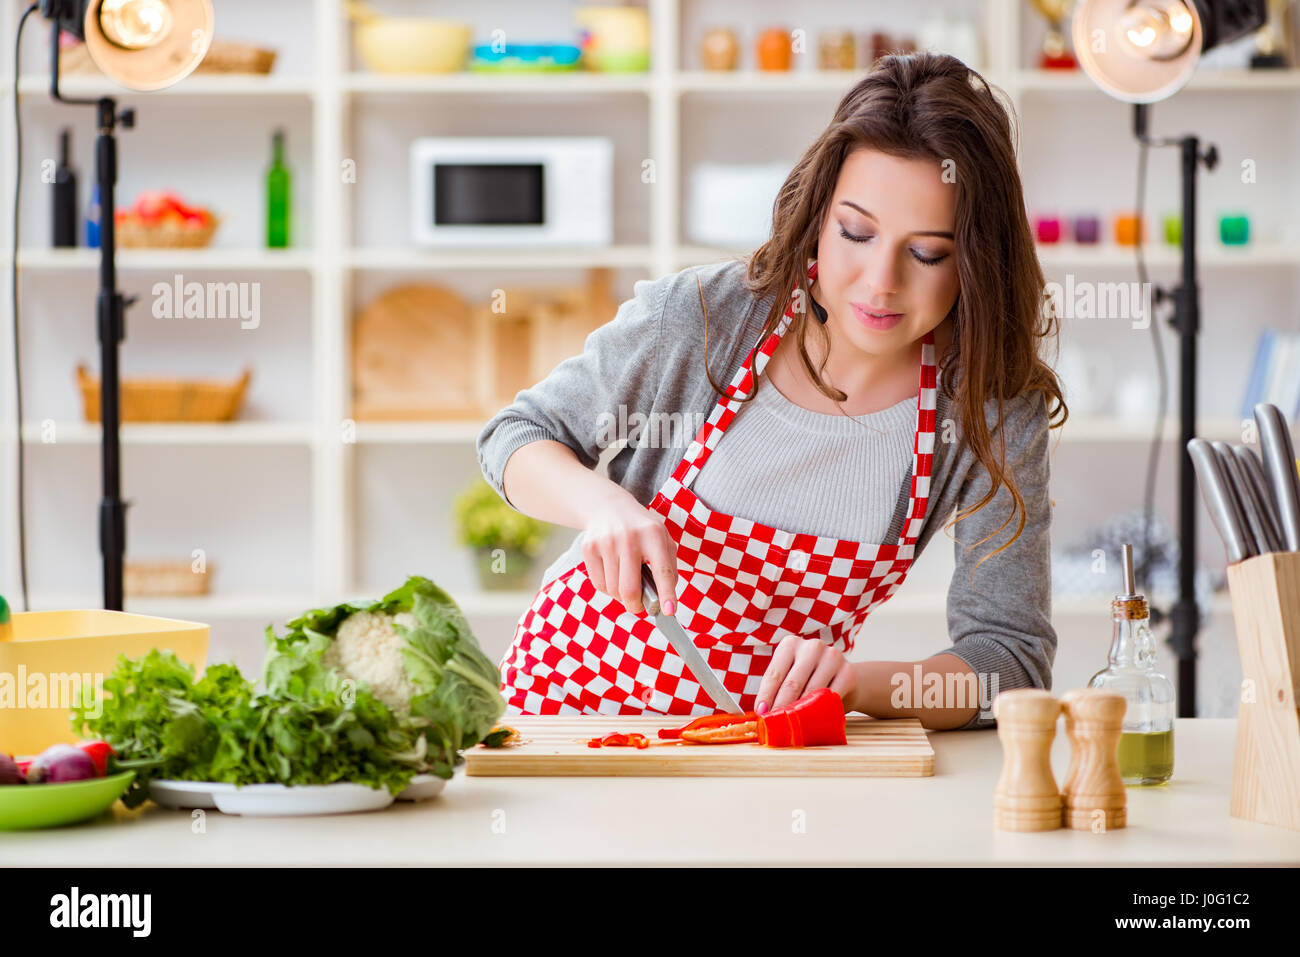 Food Cooking Tv Show In The Studio Stock Photo Alamy